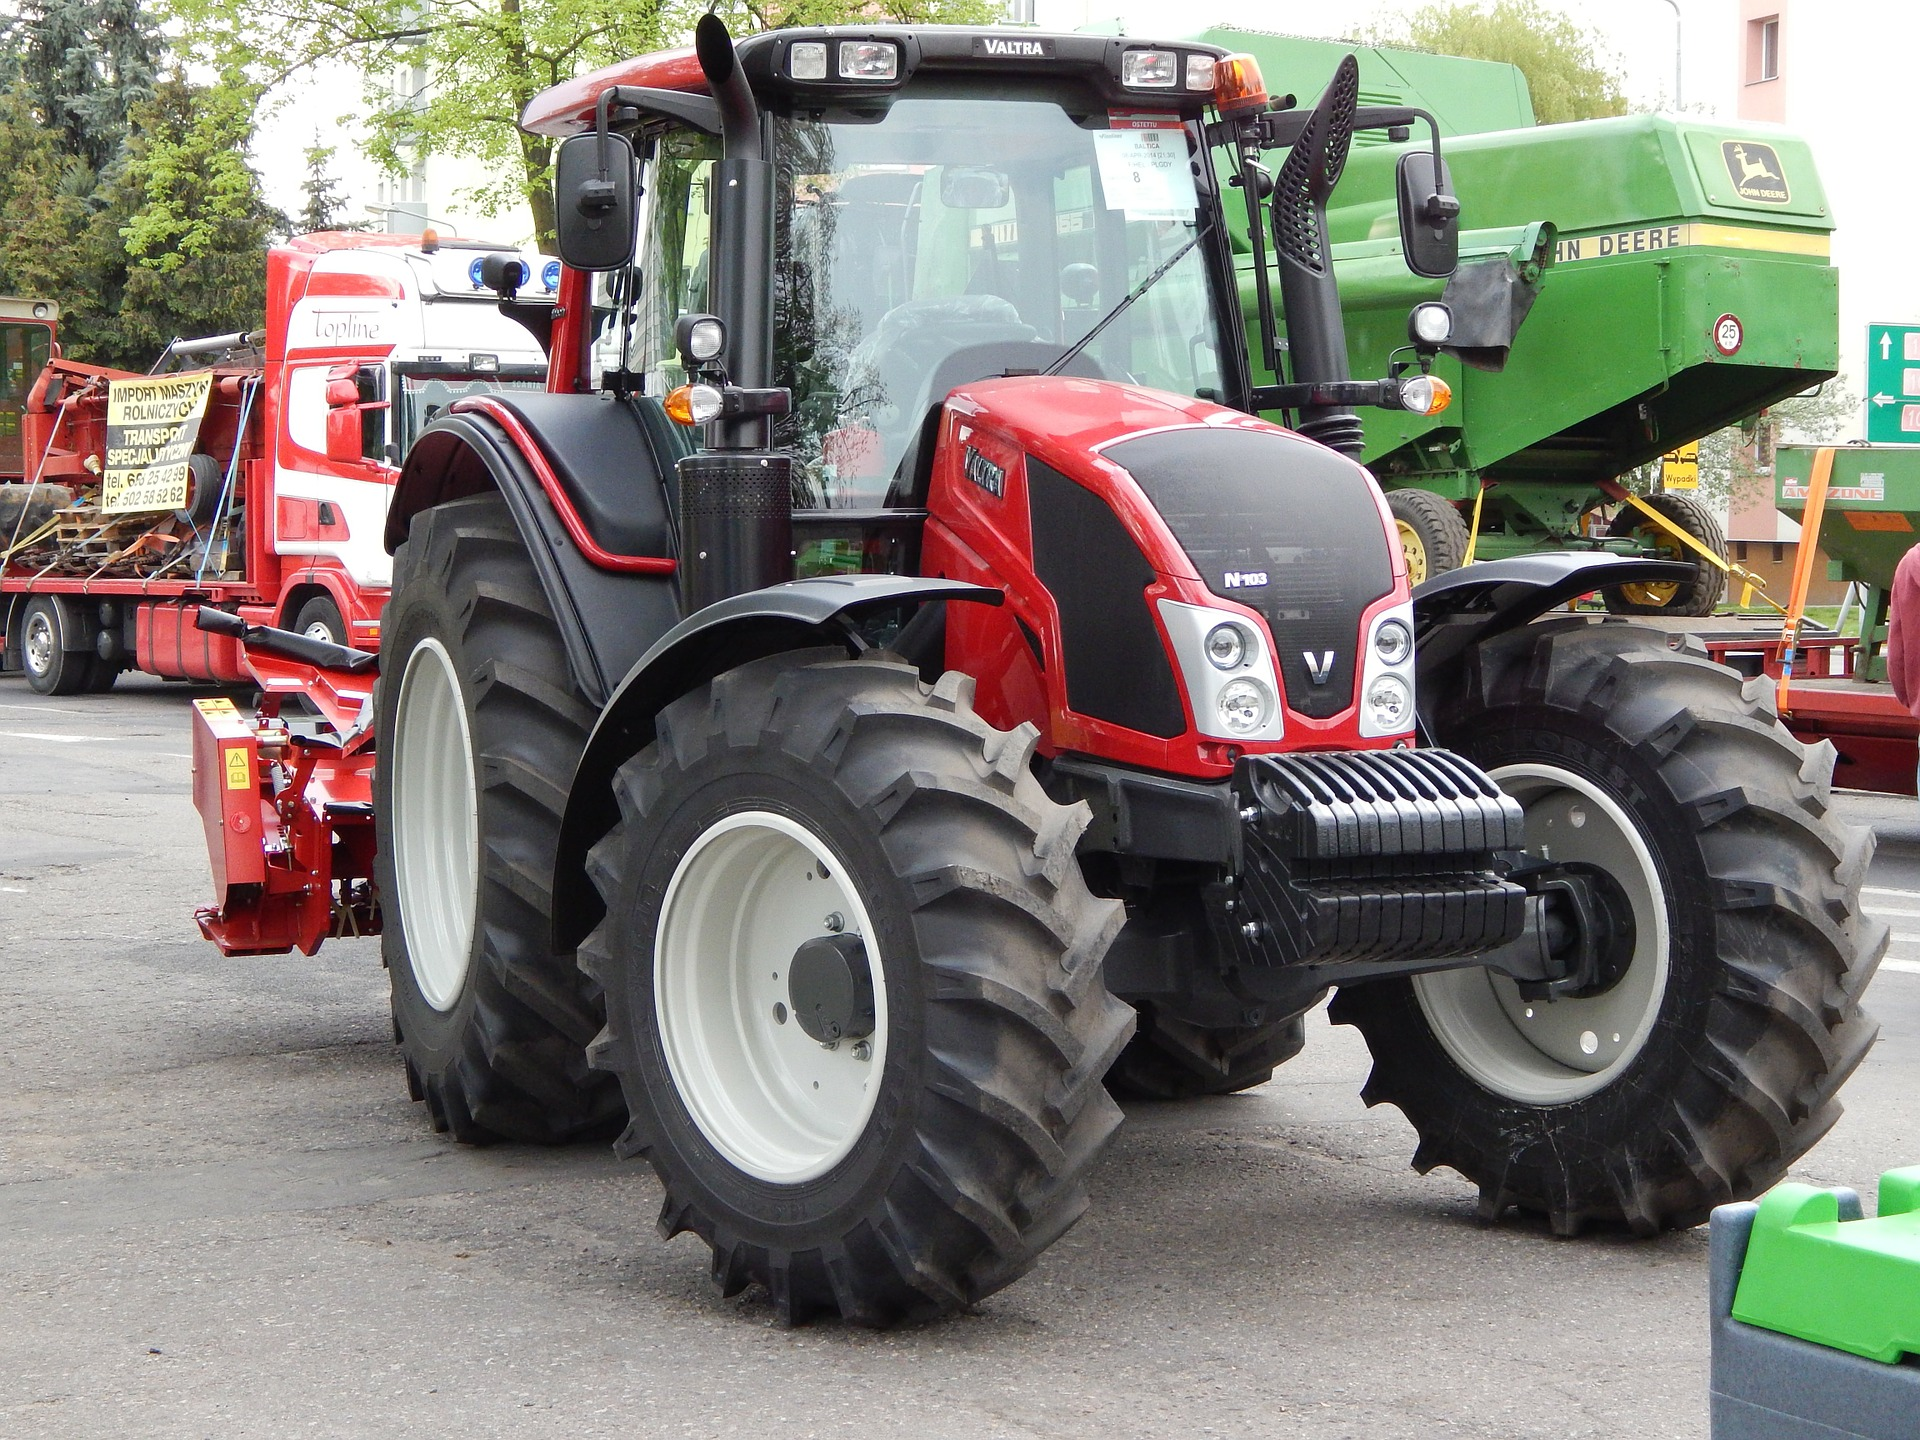 tractor-332996_1920